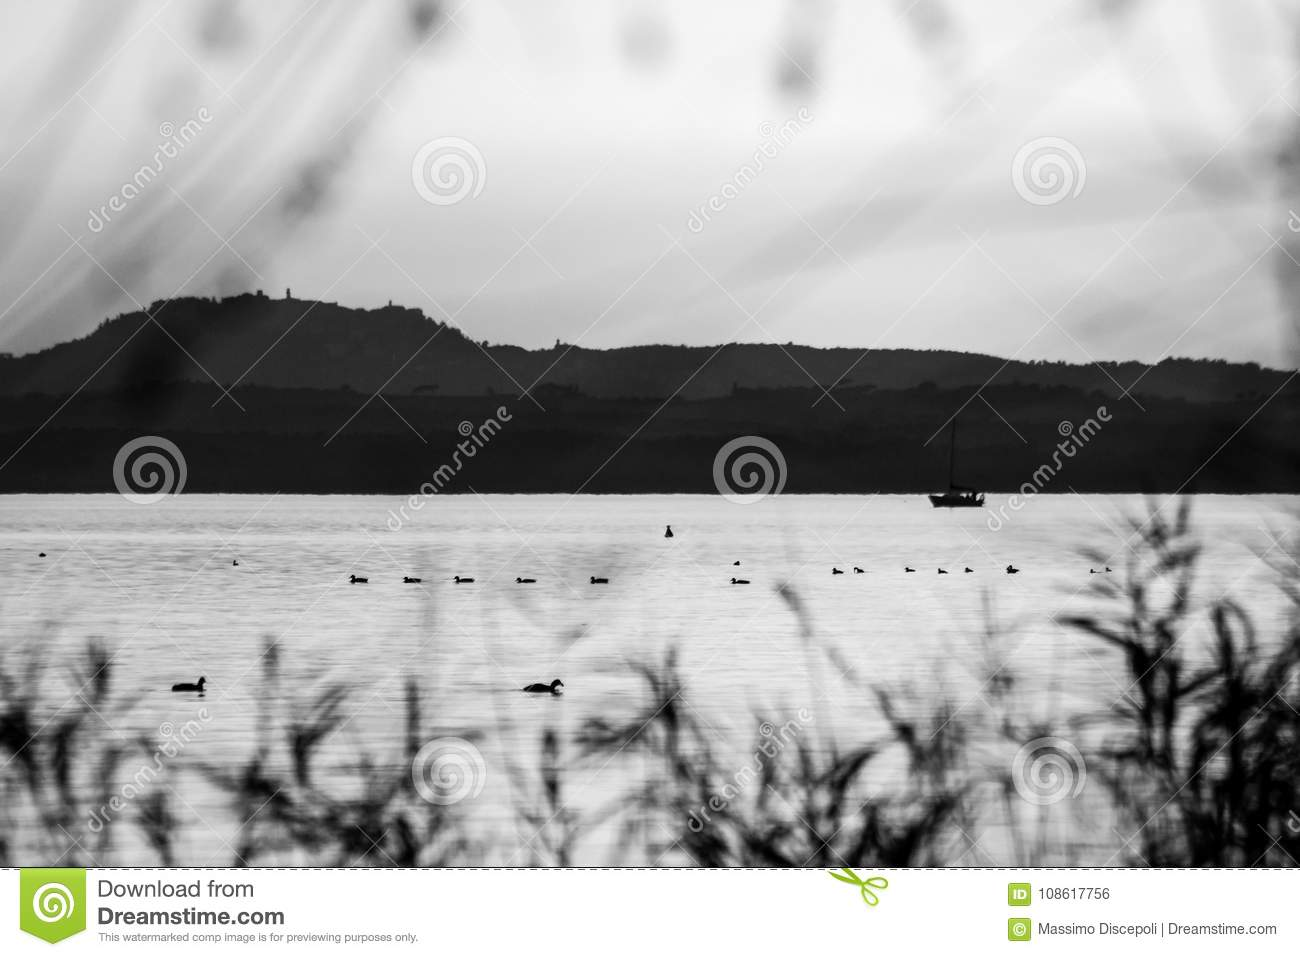 A Lake View With Boat And Birds On Water, And Out Of Focus Plants ...